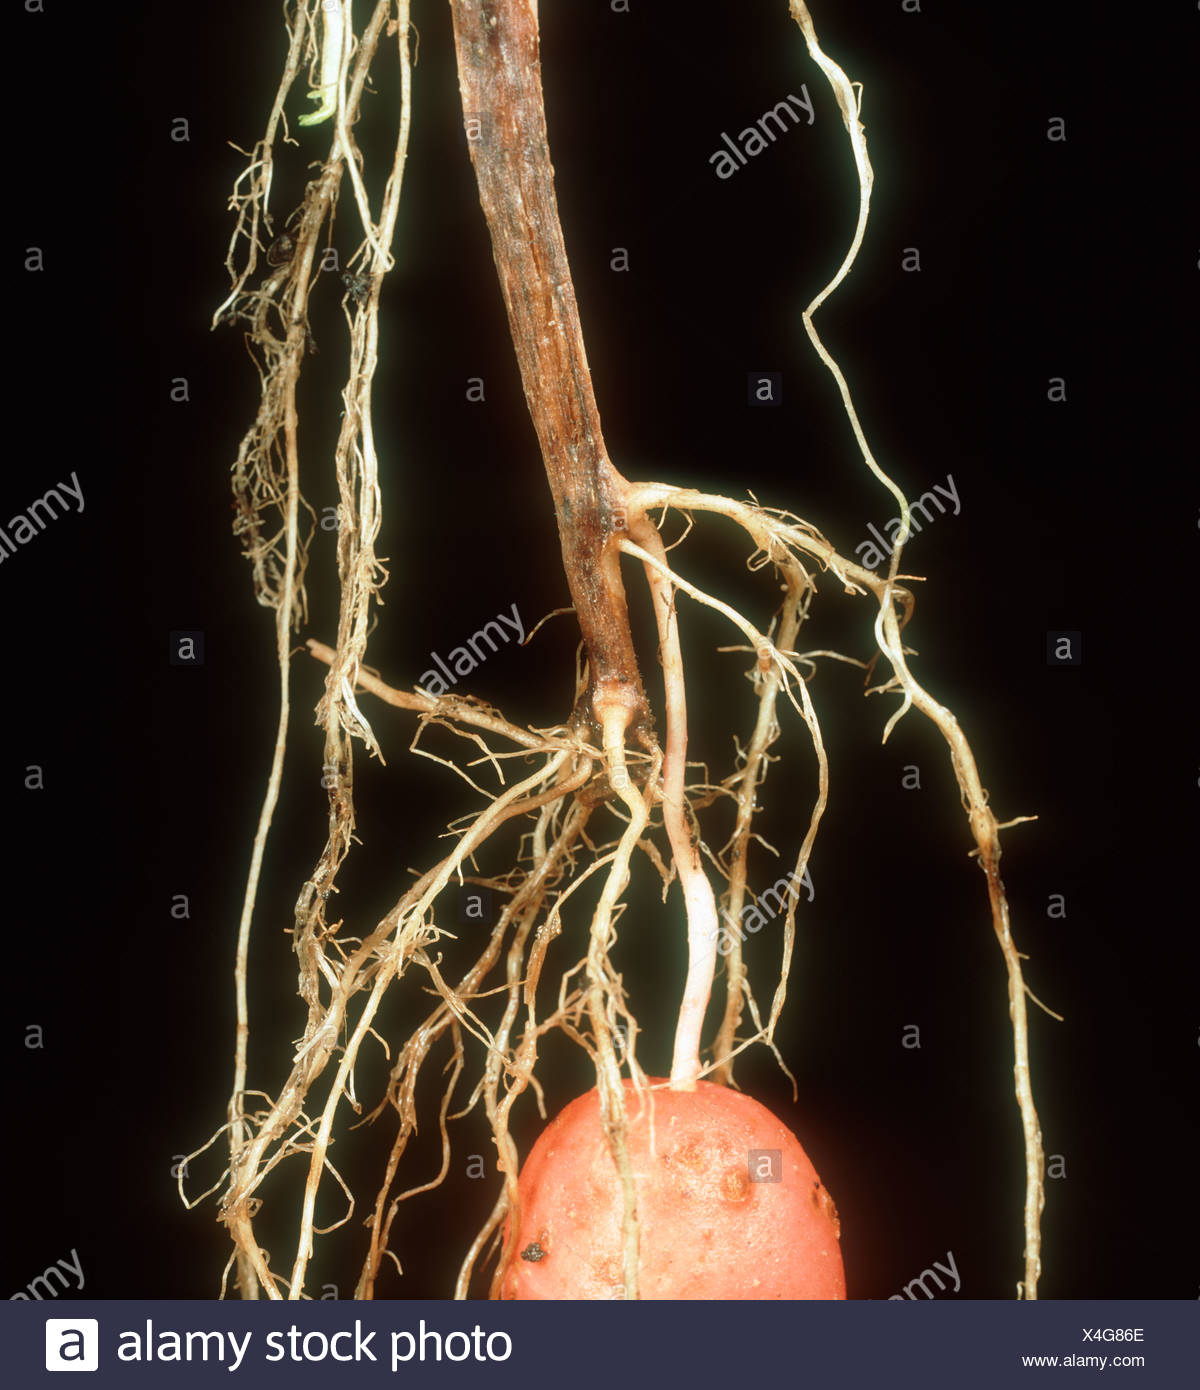 Black dot Colletotrichum atramentarium blackening of potato stem base - Stock Image